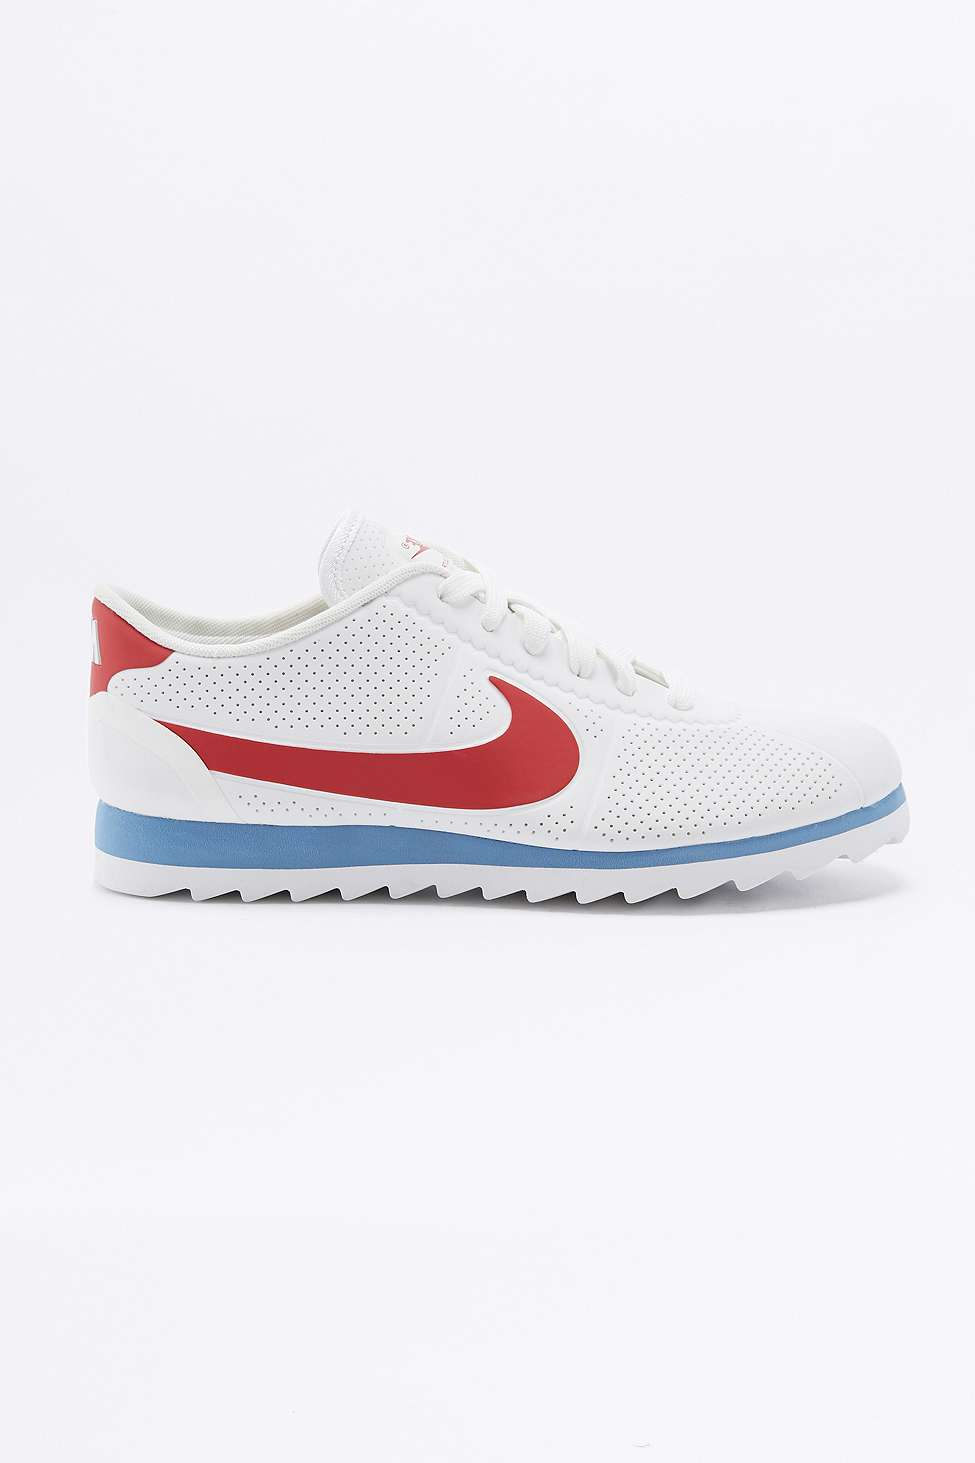 online store 4a925 f8f42 ... Nike Cortez Ultra Moire Red White and Blue Trainers 2 ...